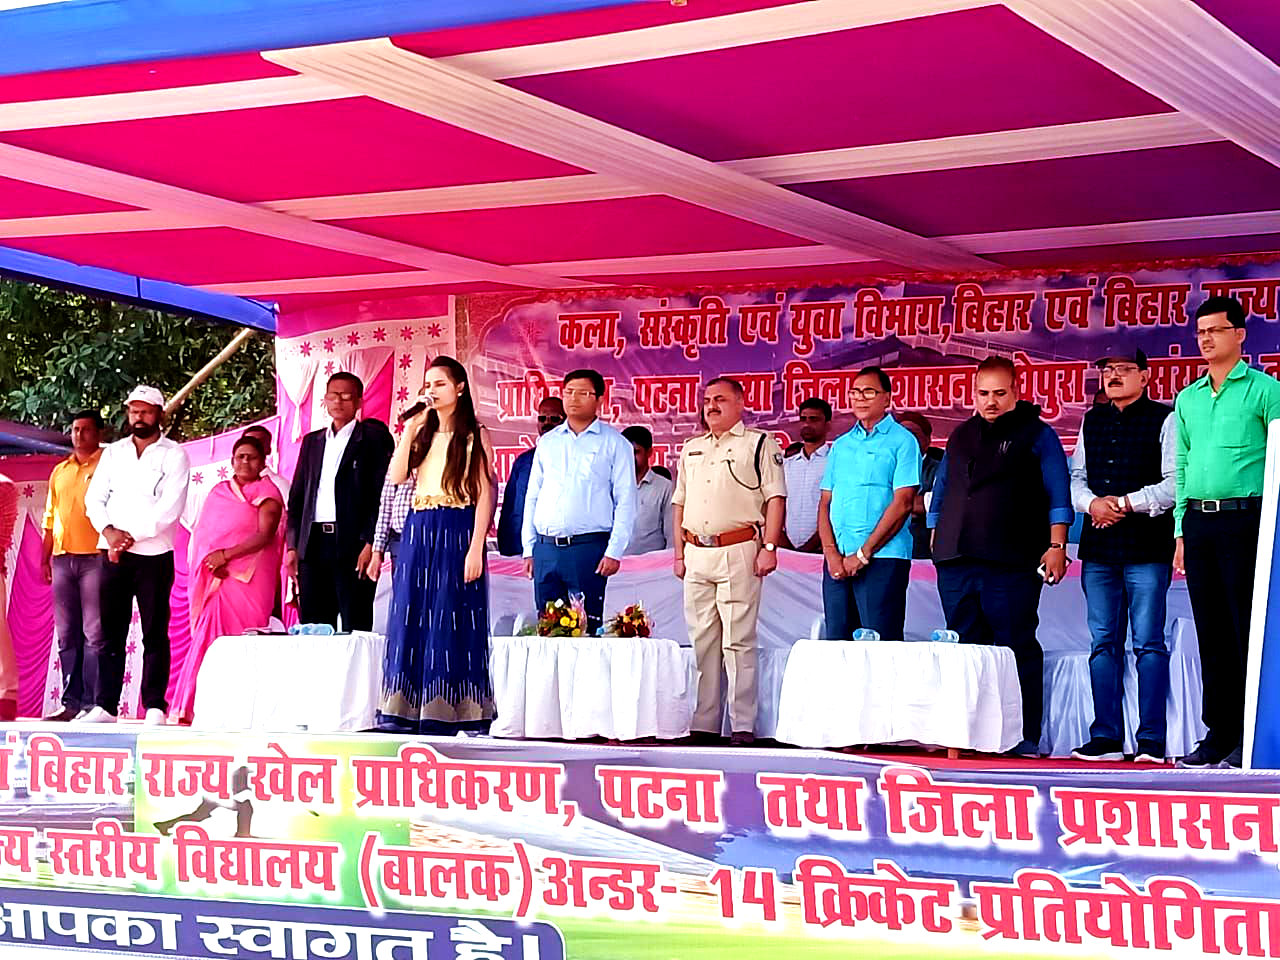 Samajsevi Dr.Bhupendra Madhepuri along with DM Navdeep Shukla, SP Sanjay Kumar, LDM R.K.Jha attending National Anthem on the occasion of State Level Boys under-14 Cricket Tournament at BN Mandal Stadium Madhepura.